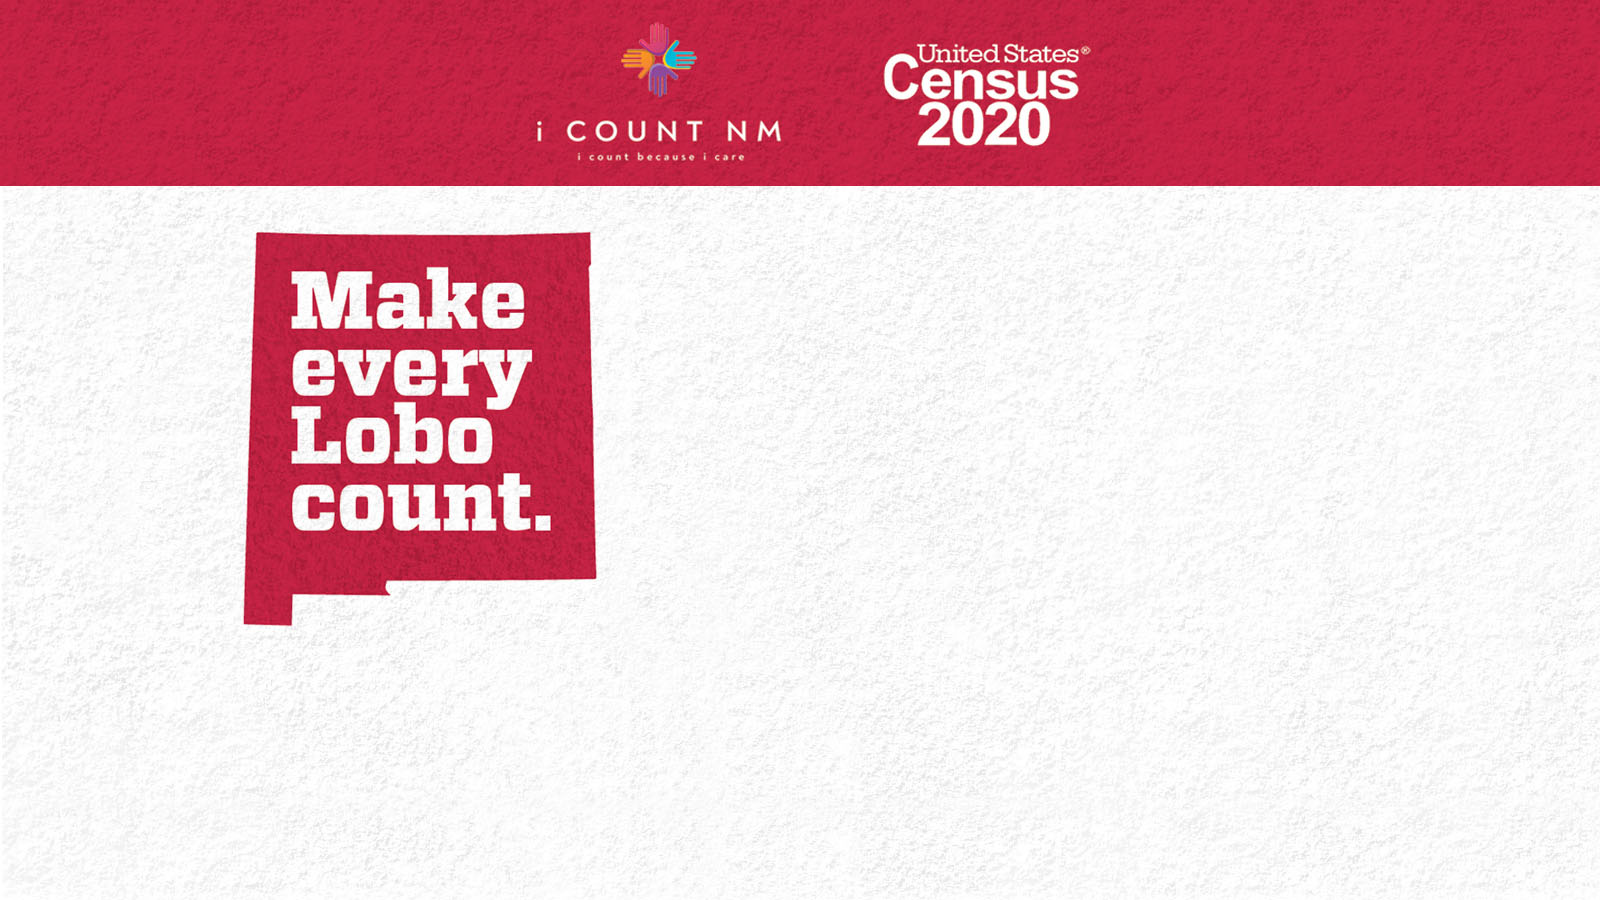 2020 Census: Here's what you need to know